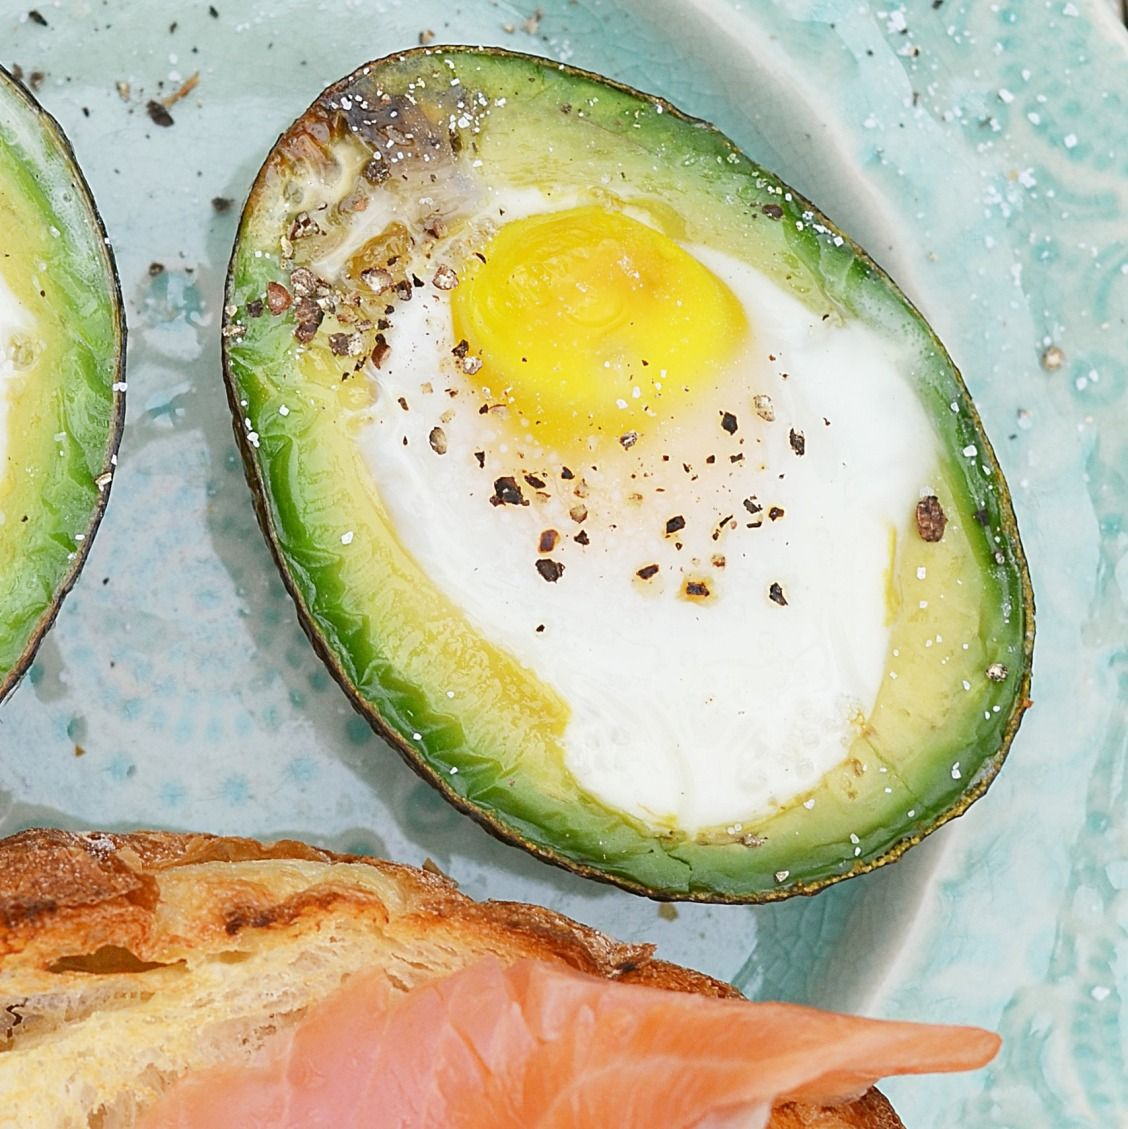 Eat well on the cheap with these 10 healthy breakfasts that cost less than $1 to make. | Health.com